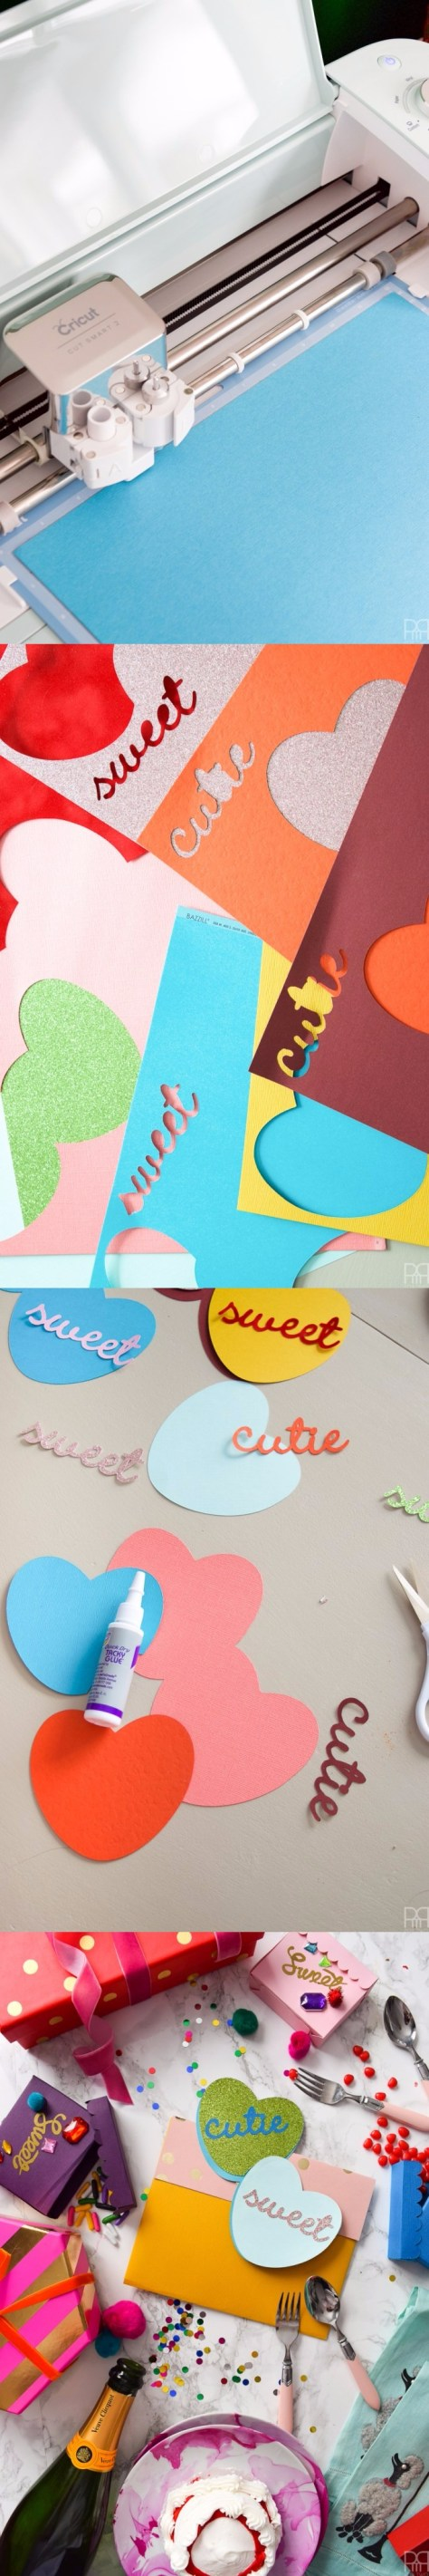 Candy Heart Cards Tutorial